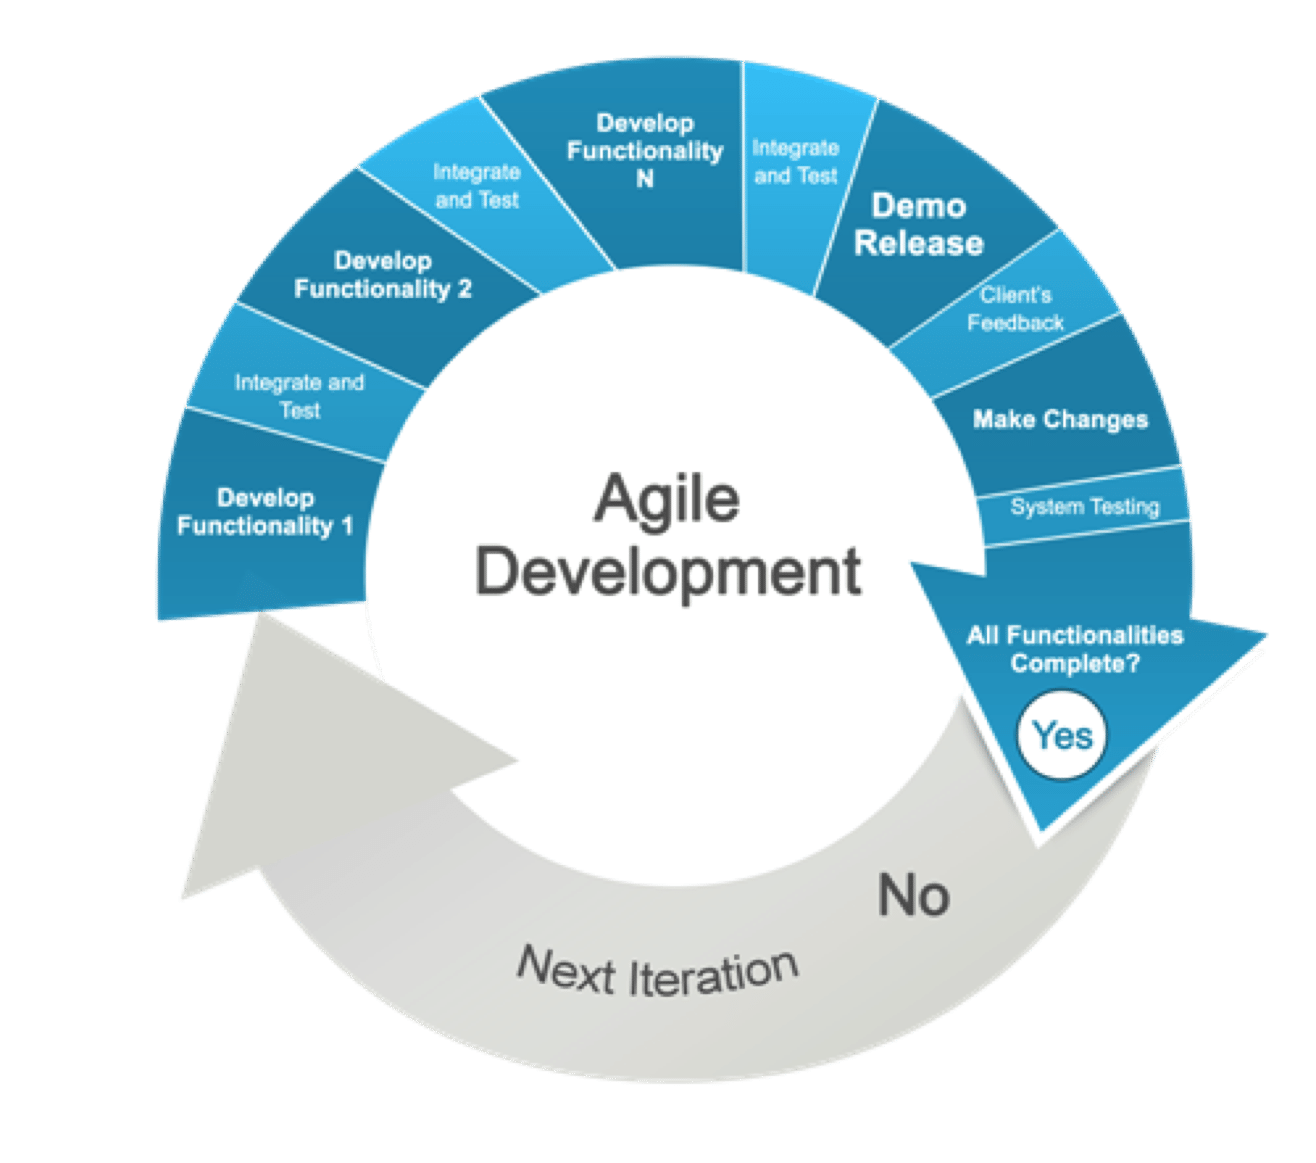 agile software development What is agile software development life cycle the agile software development life cycle is based upon the iterative and incremental process models, and focuses upon adaptability to changing product requirements and enhancing customer satisfaction through rapid delivery of working product features and client participation.